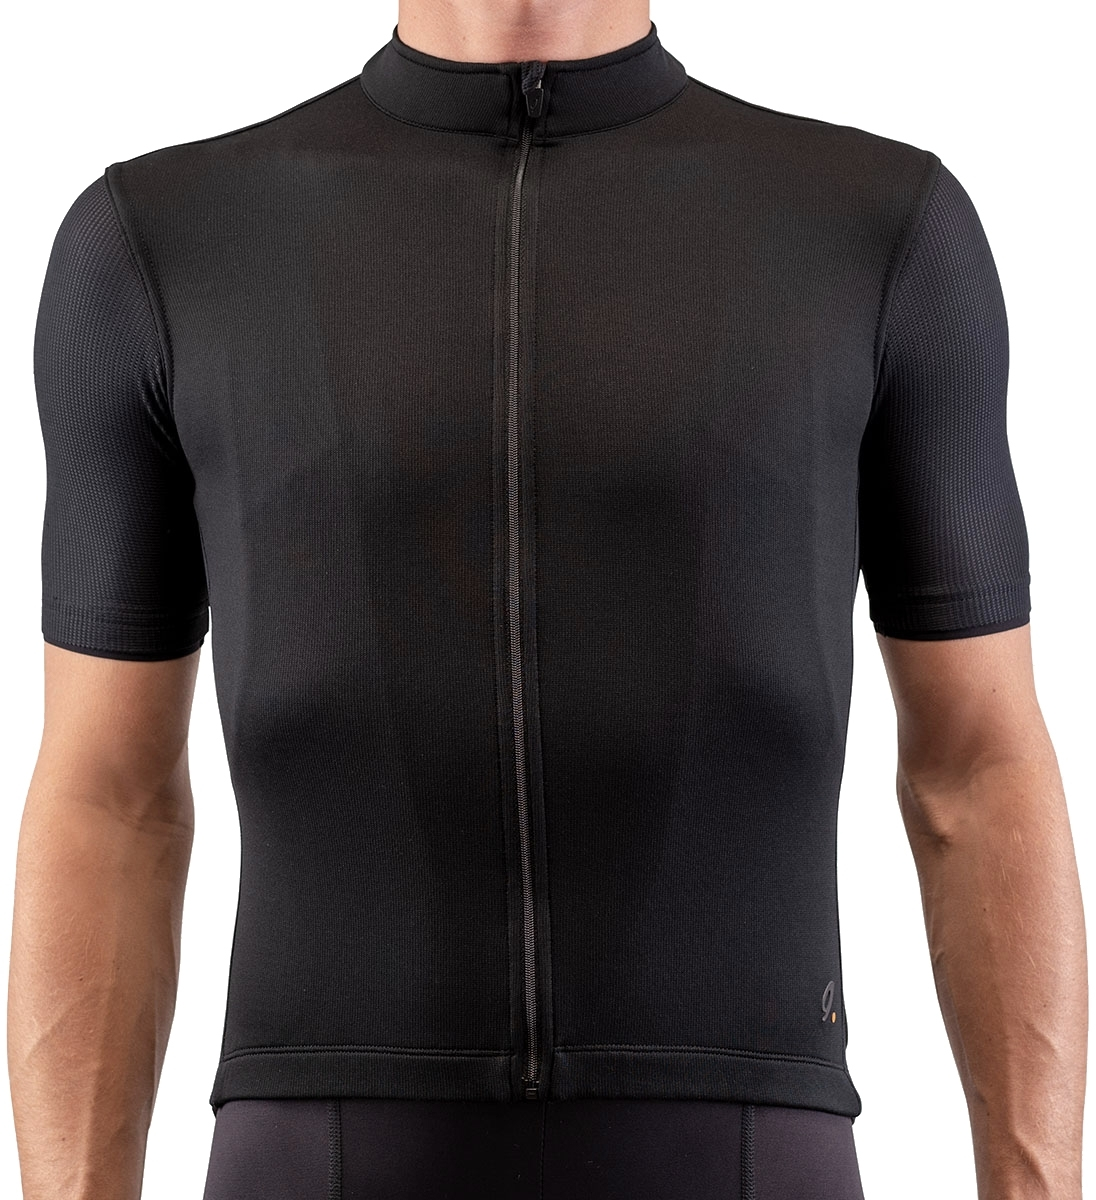 Isadore Signature Cycling Jersey - anthracite/anthracite XL